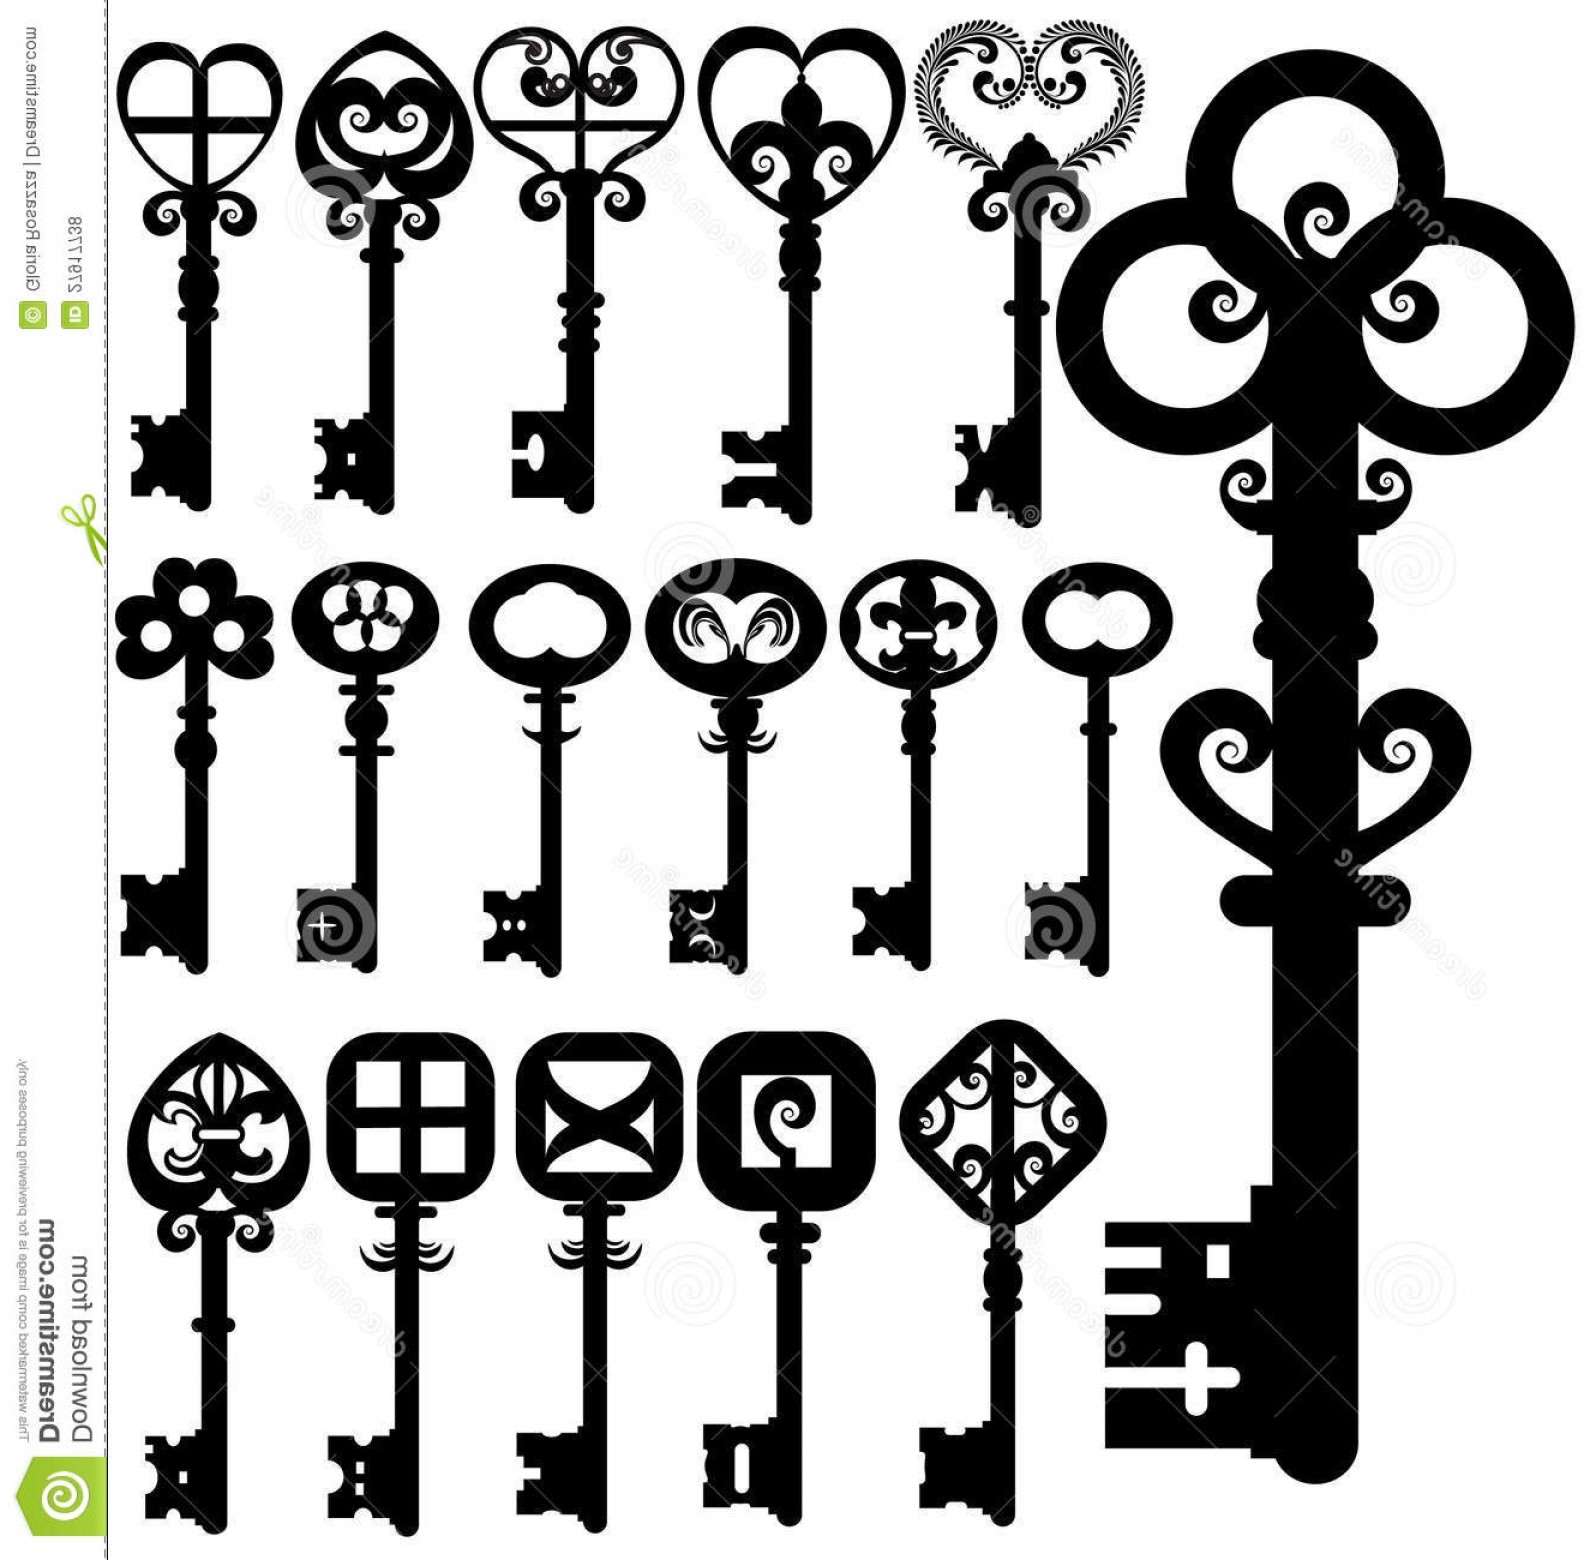 Old Key Vector: Royalty Free Stock Photos Old Keys Silhouettes Image